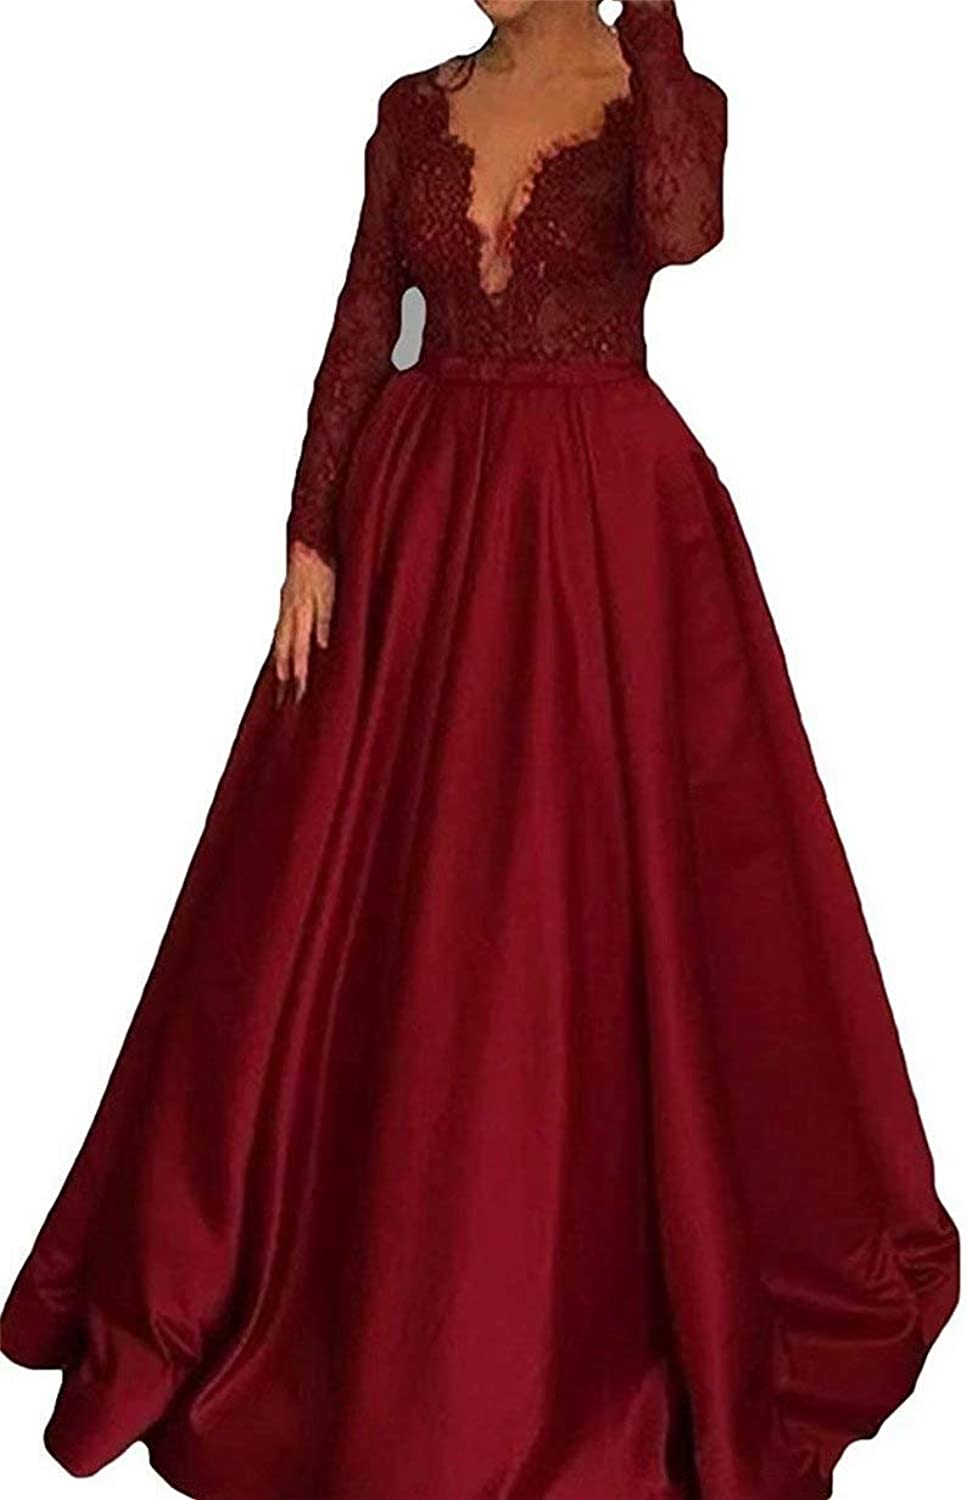 EEFZL Lace Long Sleeves Mother The Bride Prom Dresses Long Evening Party Formal Gown